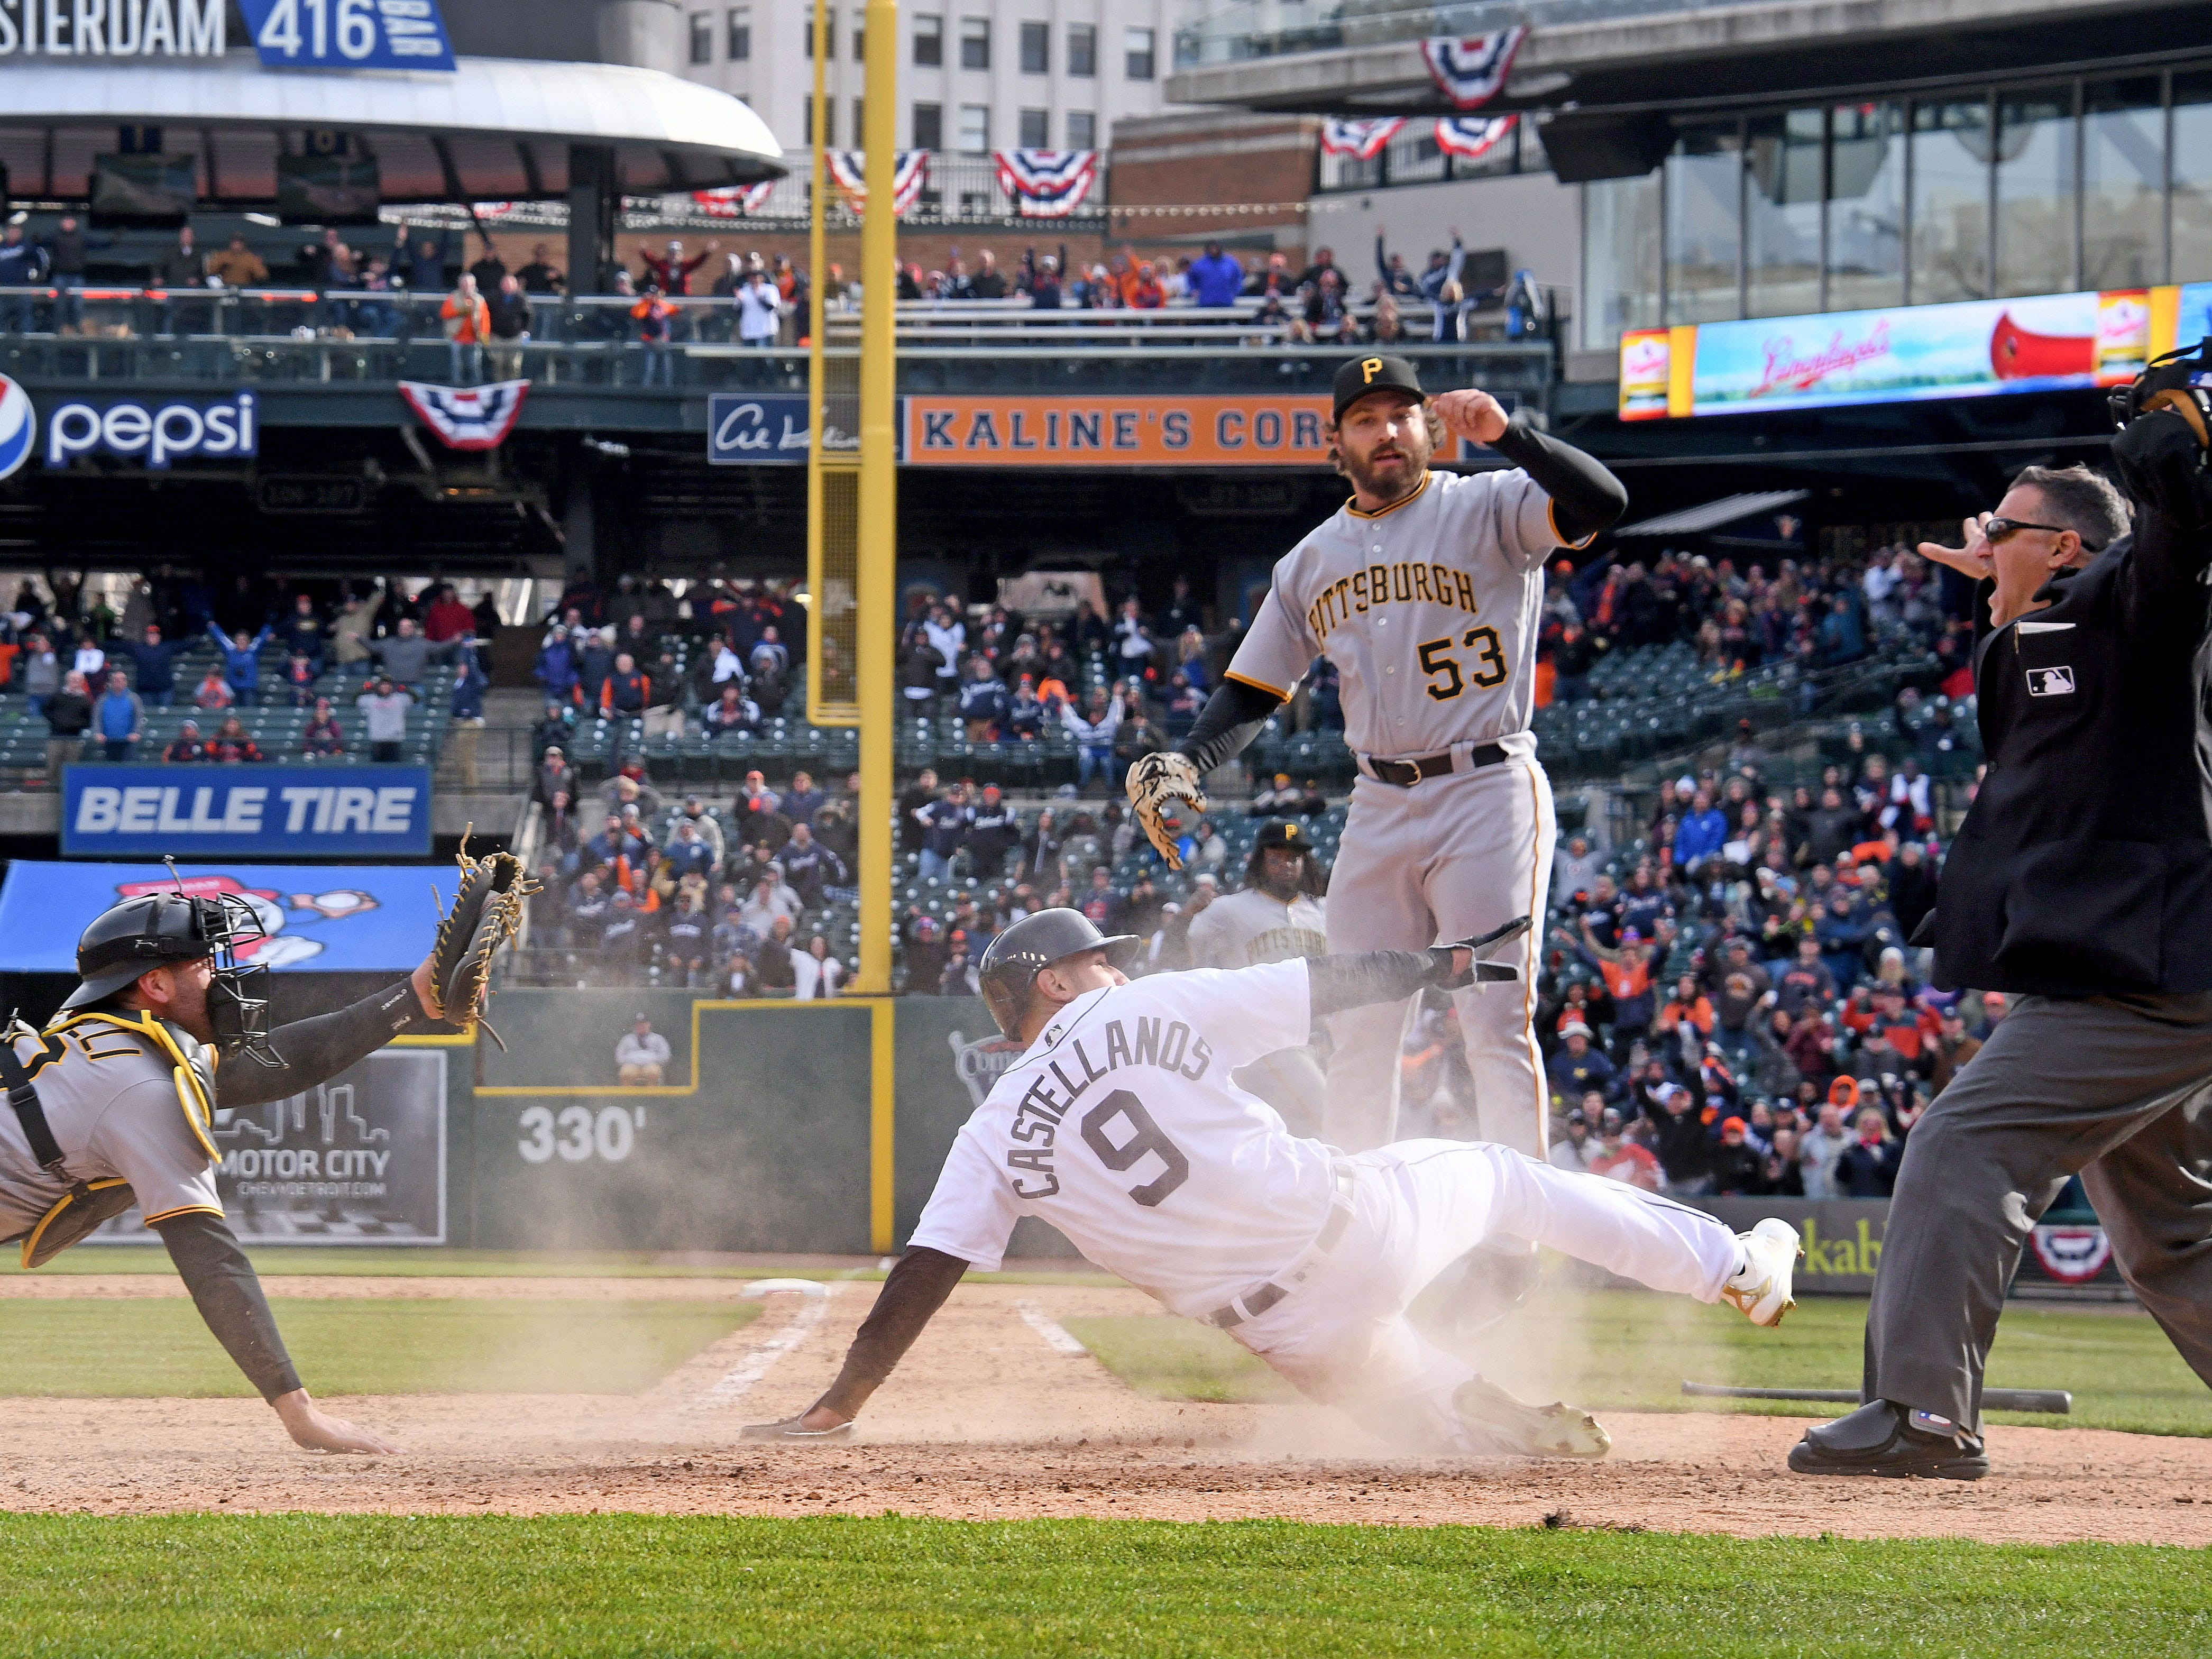 Nick Castellanos slides home as the ball arrives in the 10th inning at Comerica Park on Opening Day, Friday, March 30, 2018 against the Pittsburgh Pirates. Castellanos was initially ruled safe, then out, causing an uproar and costing the Tigers the game. The Pirates scored 3 runs in the 13th inning to beat Detroit 13-10.